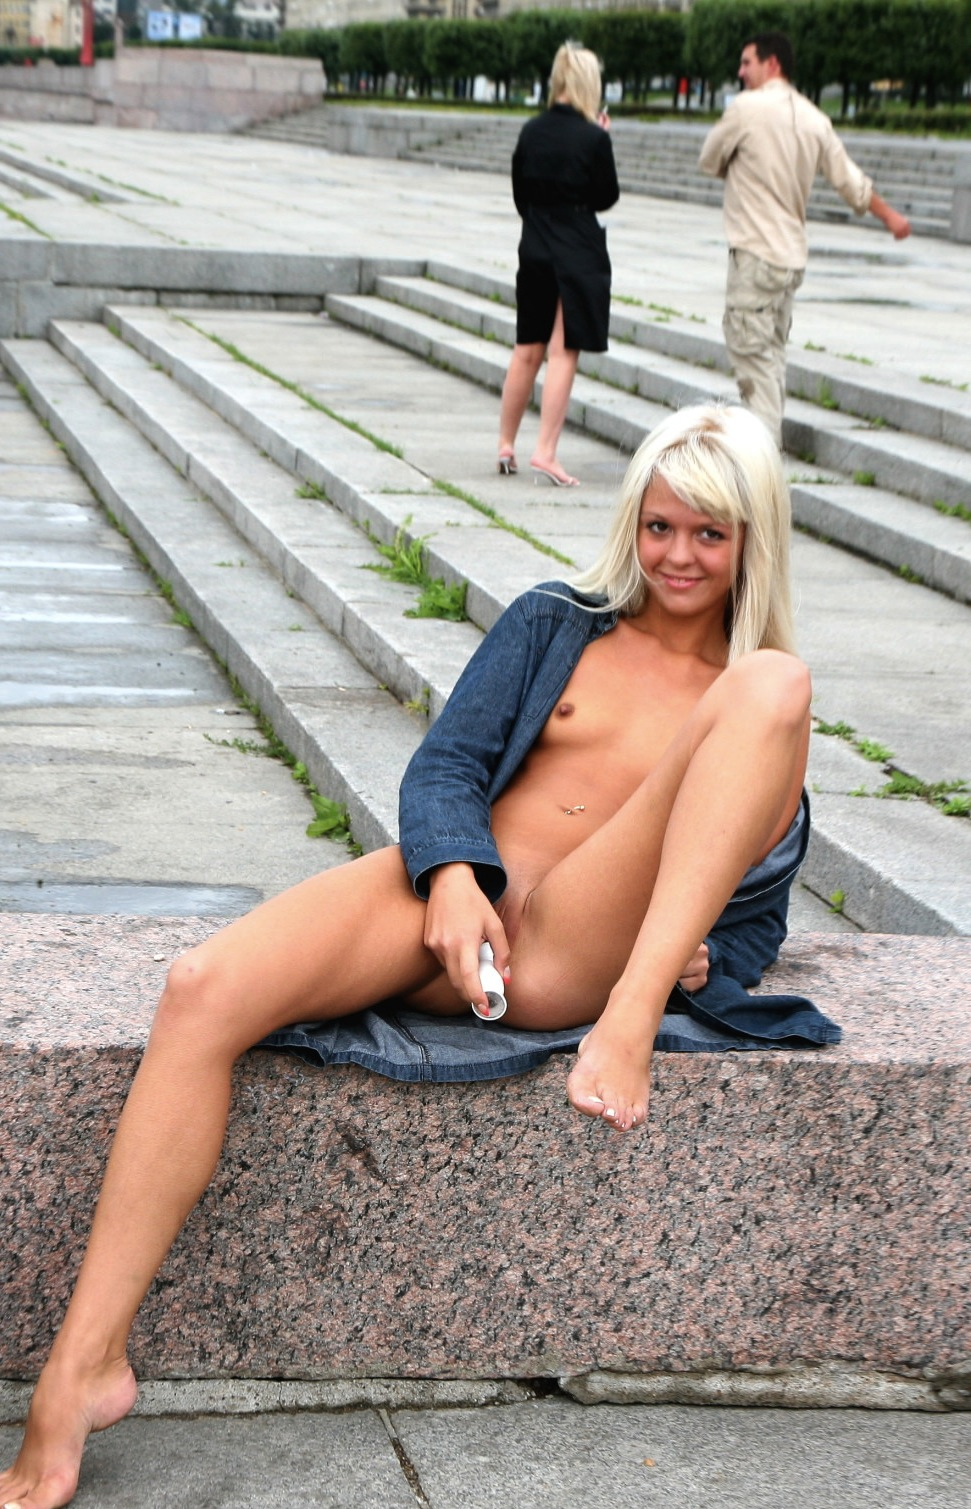 Girl with dildo in pussy in public 12